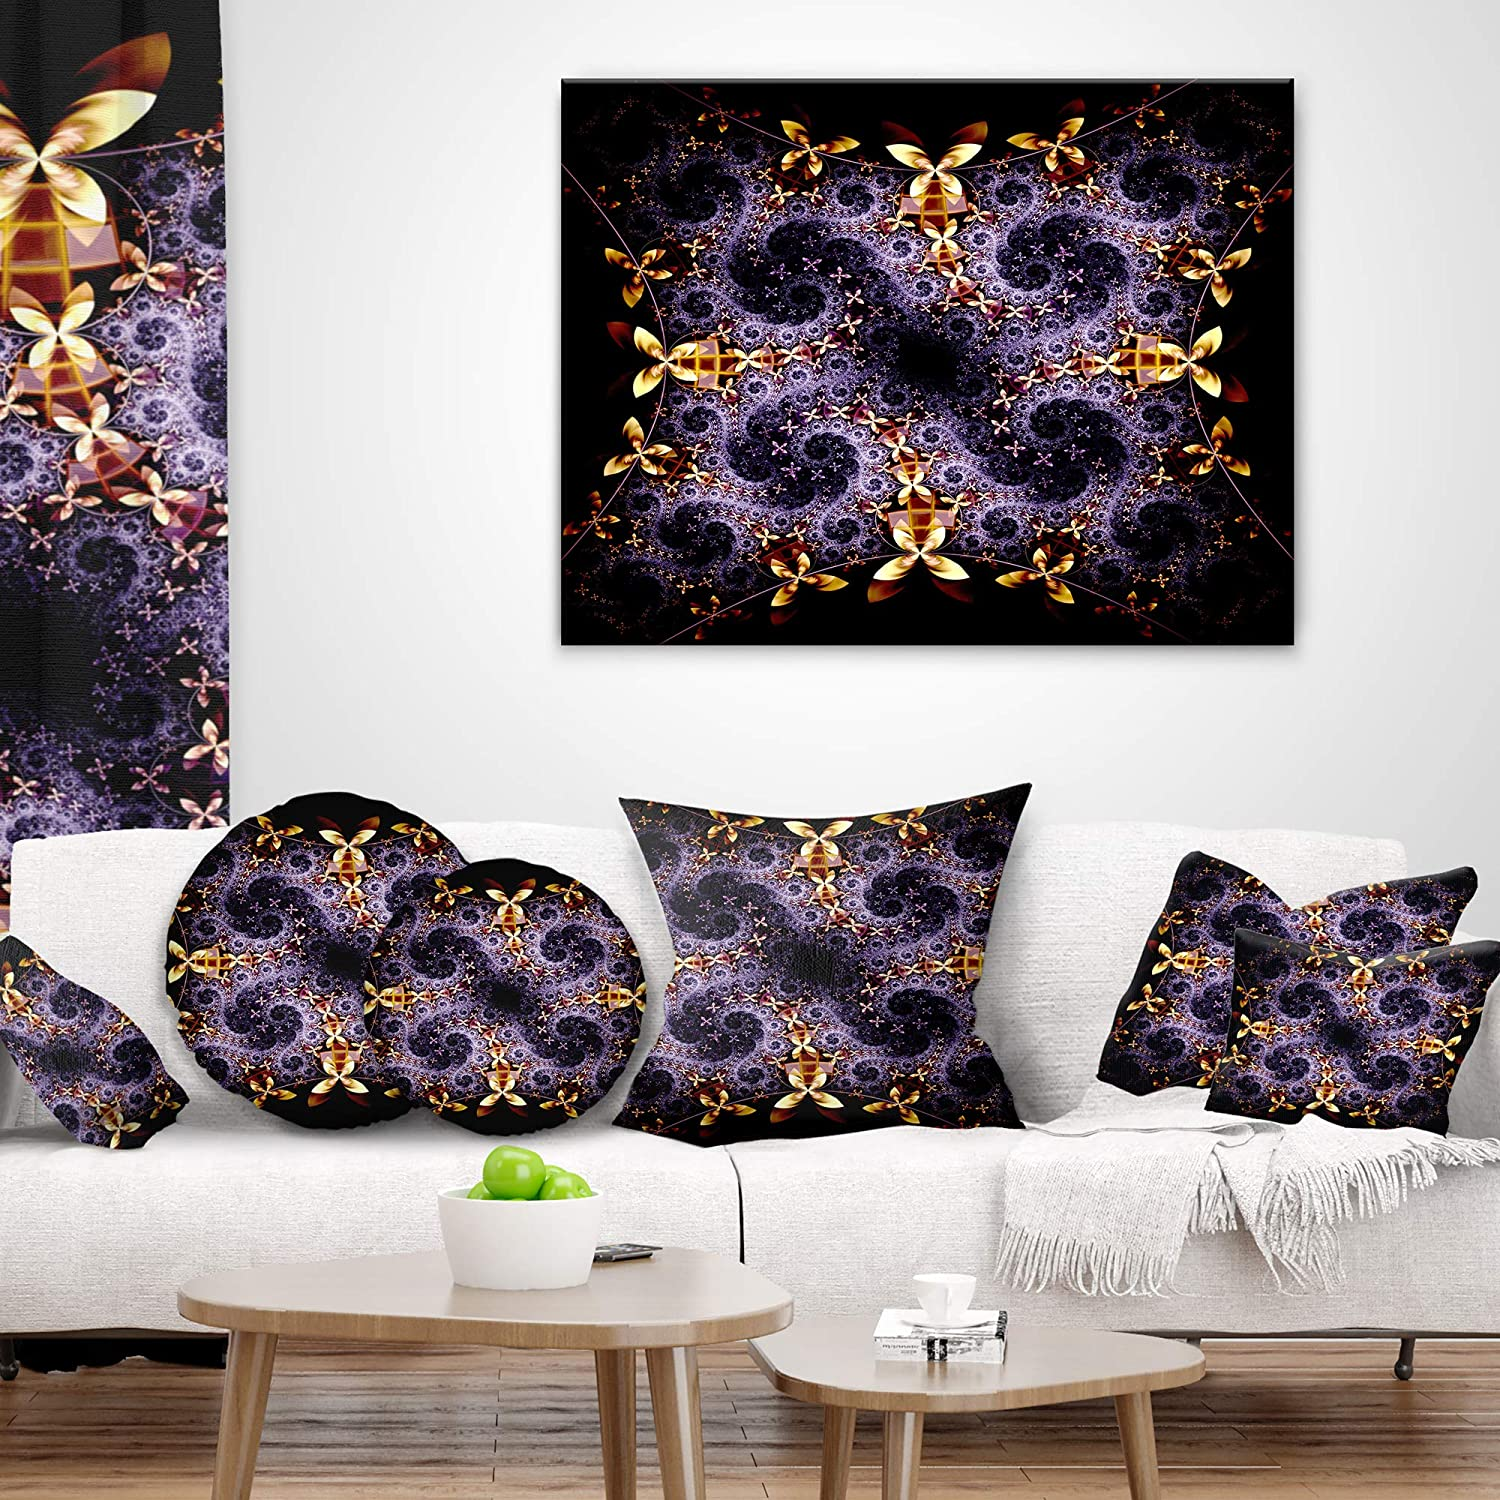 Designart CU16458-18-18 Yellow and Violet Fractal Flower' Abstract Cushion Cover for Living Room, Sofa Throw Pillow, 18' x 18', Insert Printed